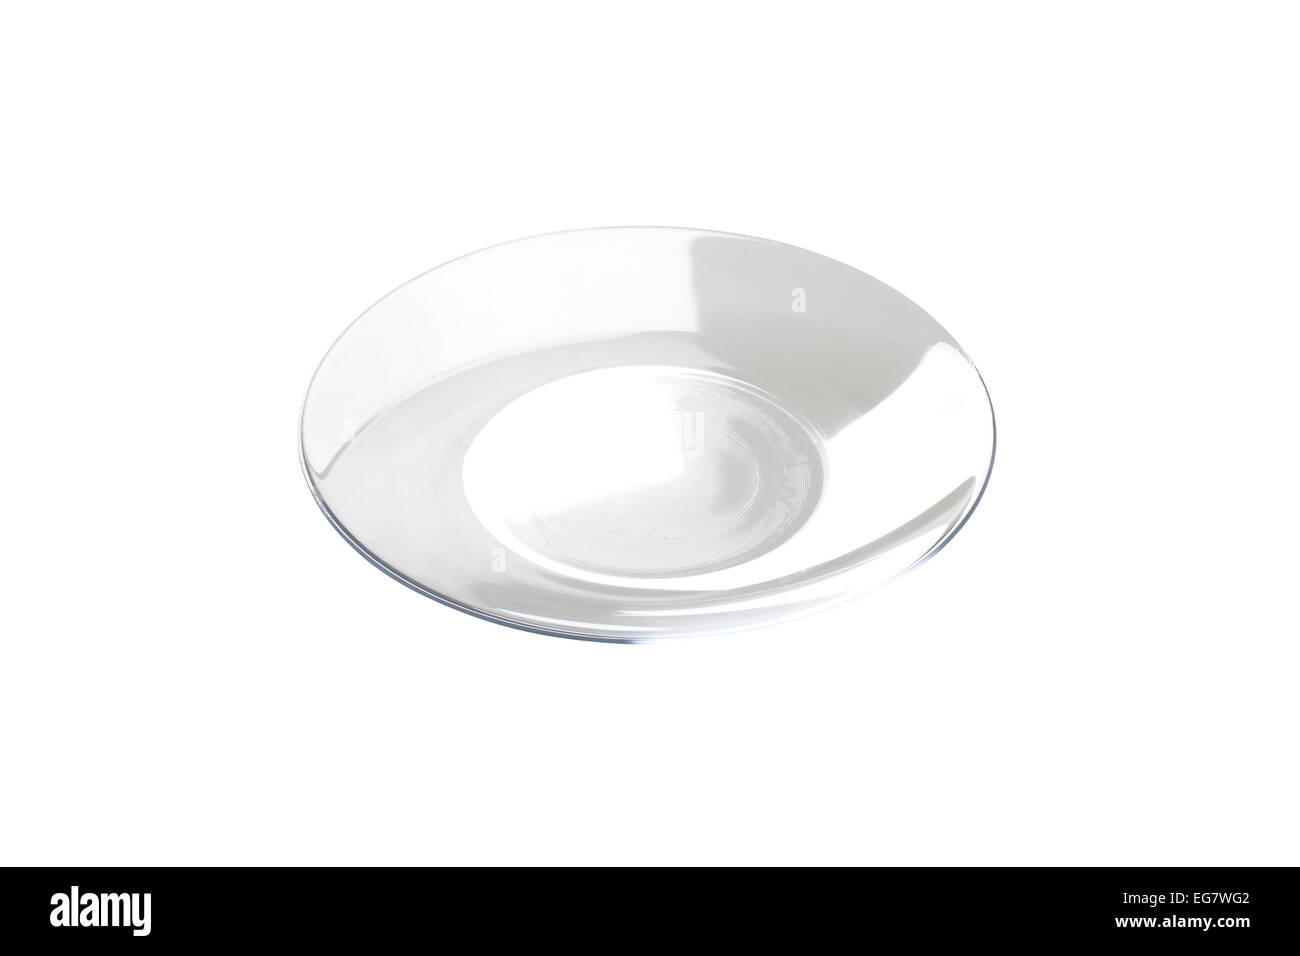 Empty transparent plate with wide rim - Stock Image